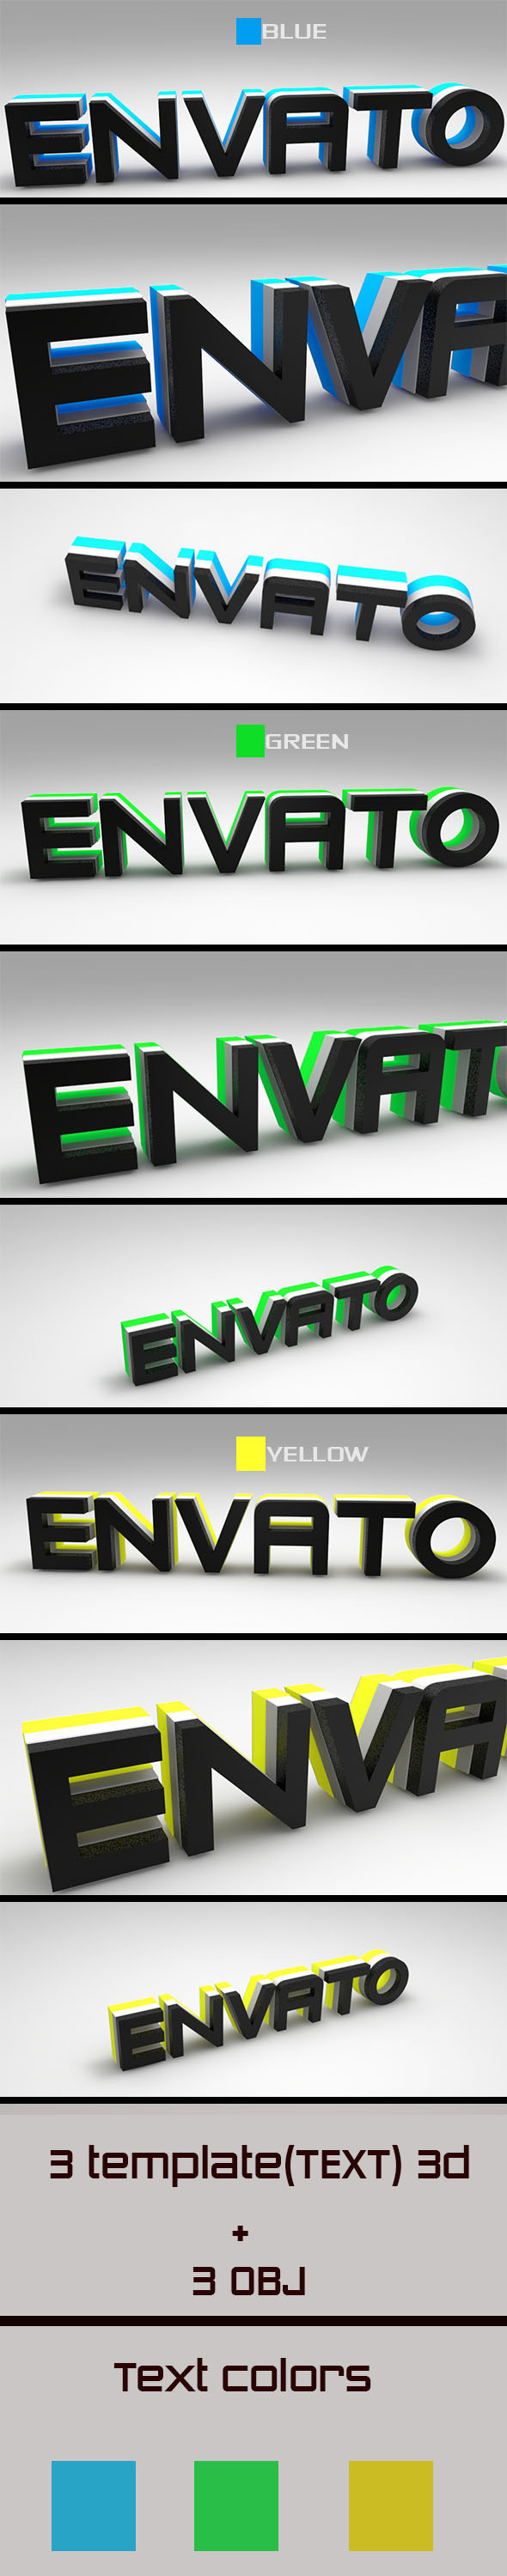 Text 3D Envato ( Blue-Green-Yellow)  - 3DOcean Item for Sale